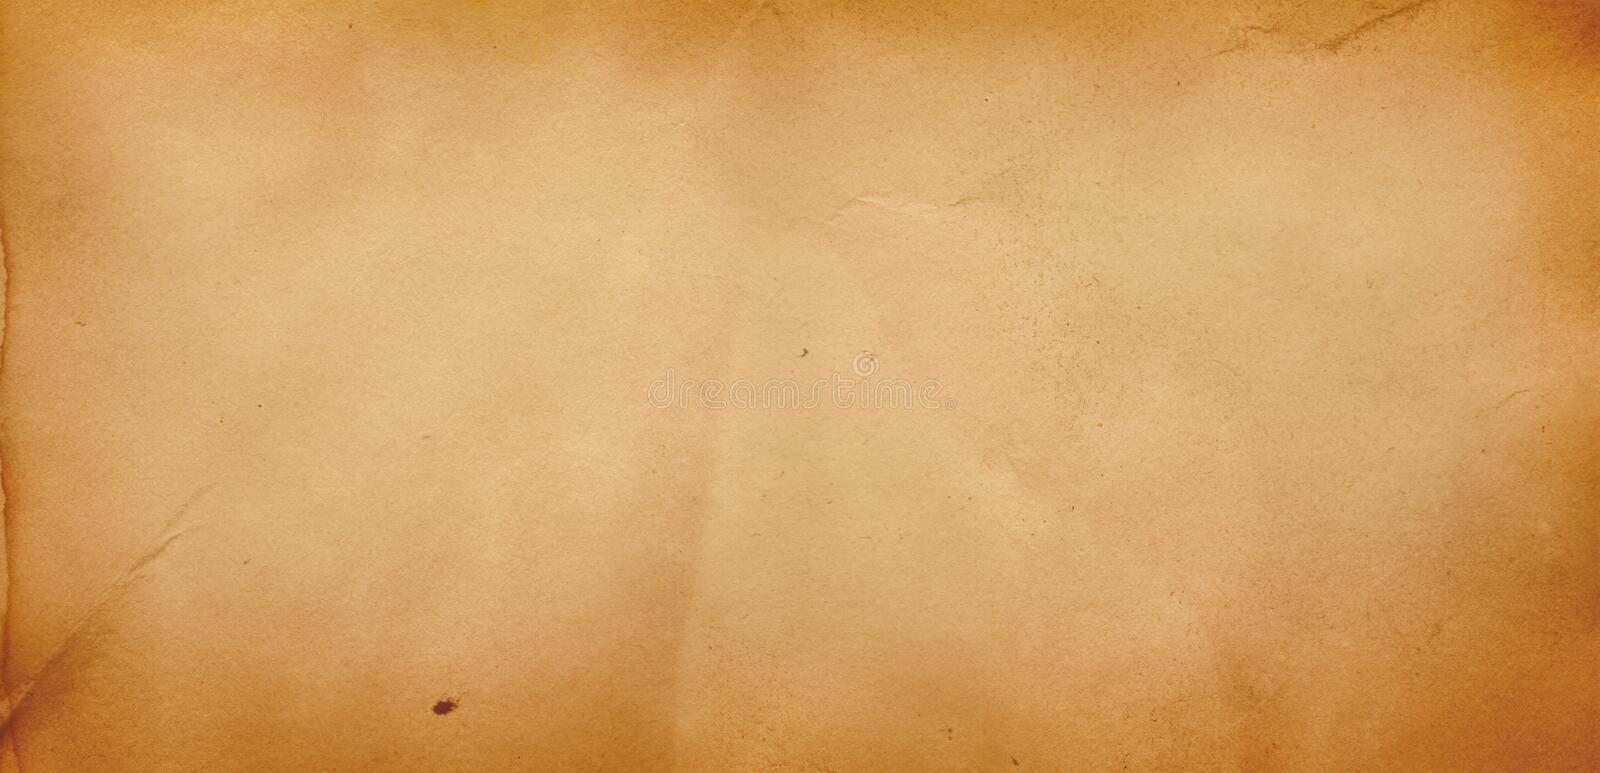 Texture of old paper. stock images